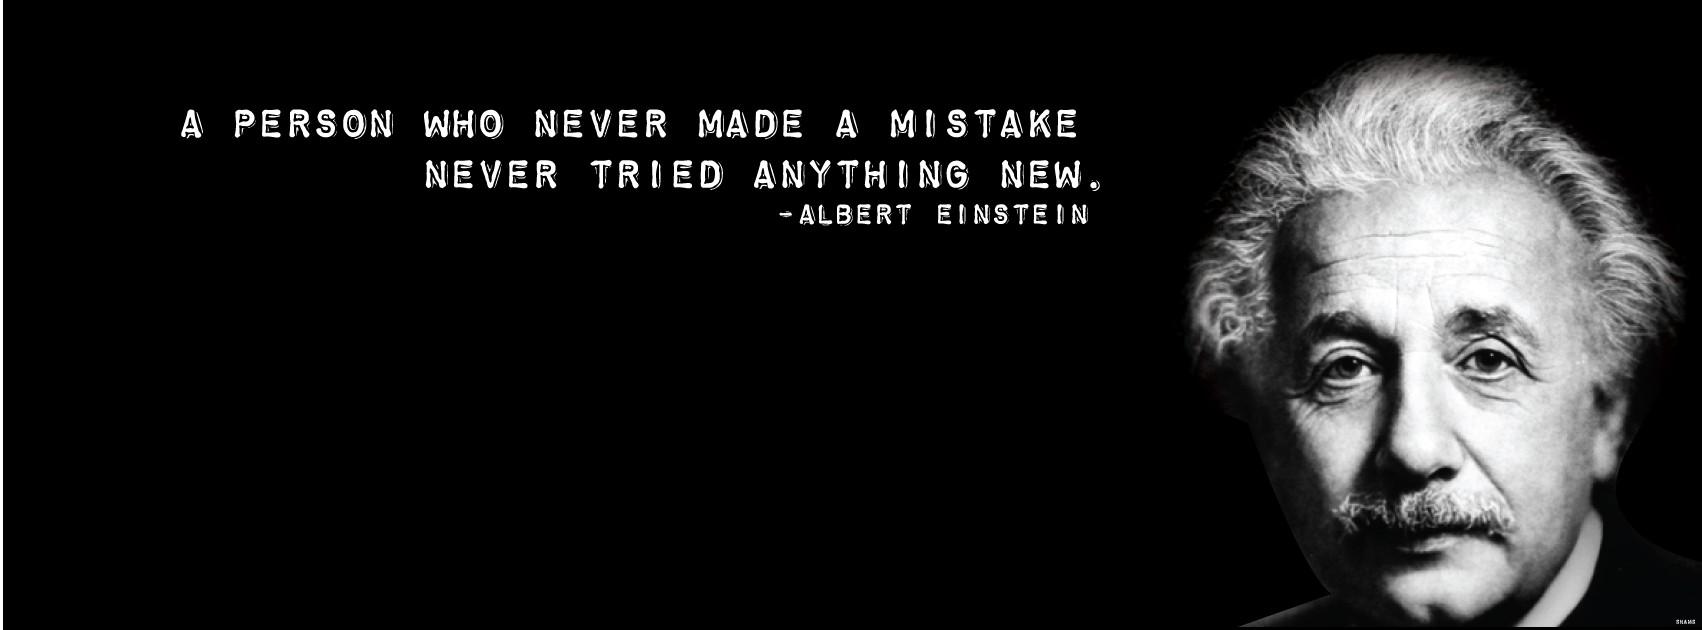 Pftw Aristotle Quote: PFTW: Albert Einstein Quote